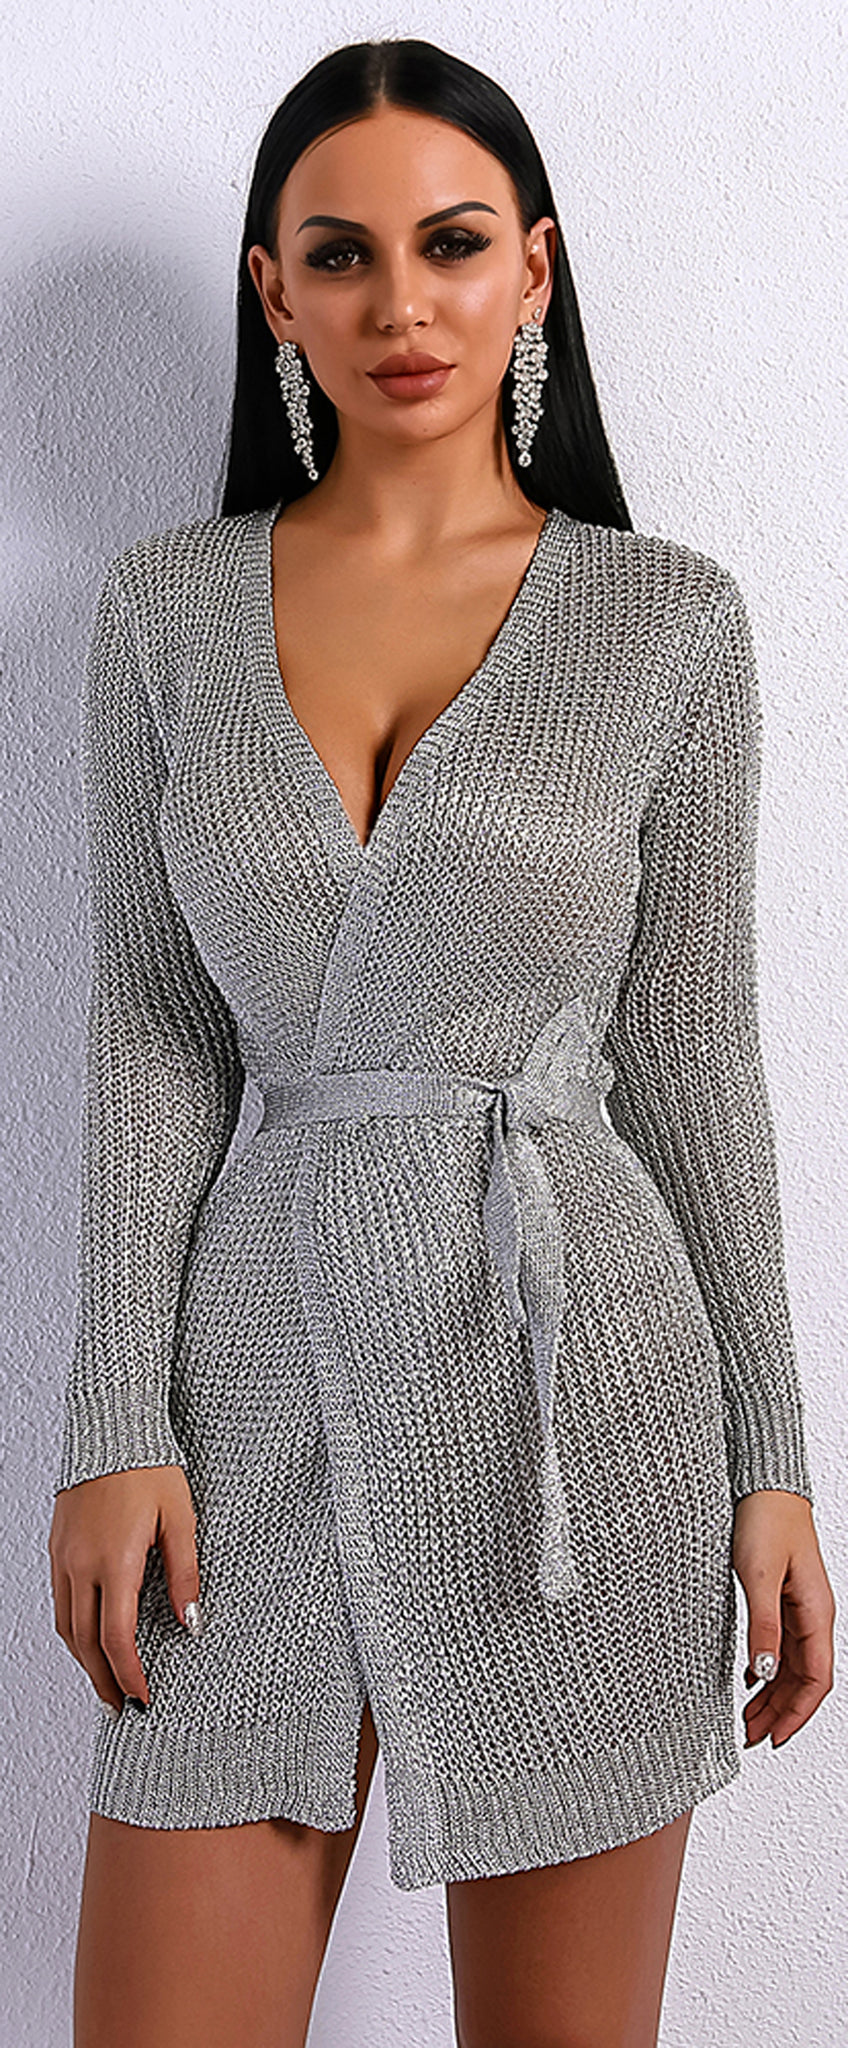 Summer Outfits Baddie Dresses: Paulina Knitted Metallic Tie Up Long Cardigan Sweater